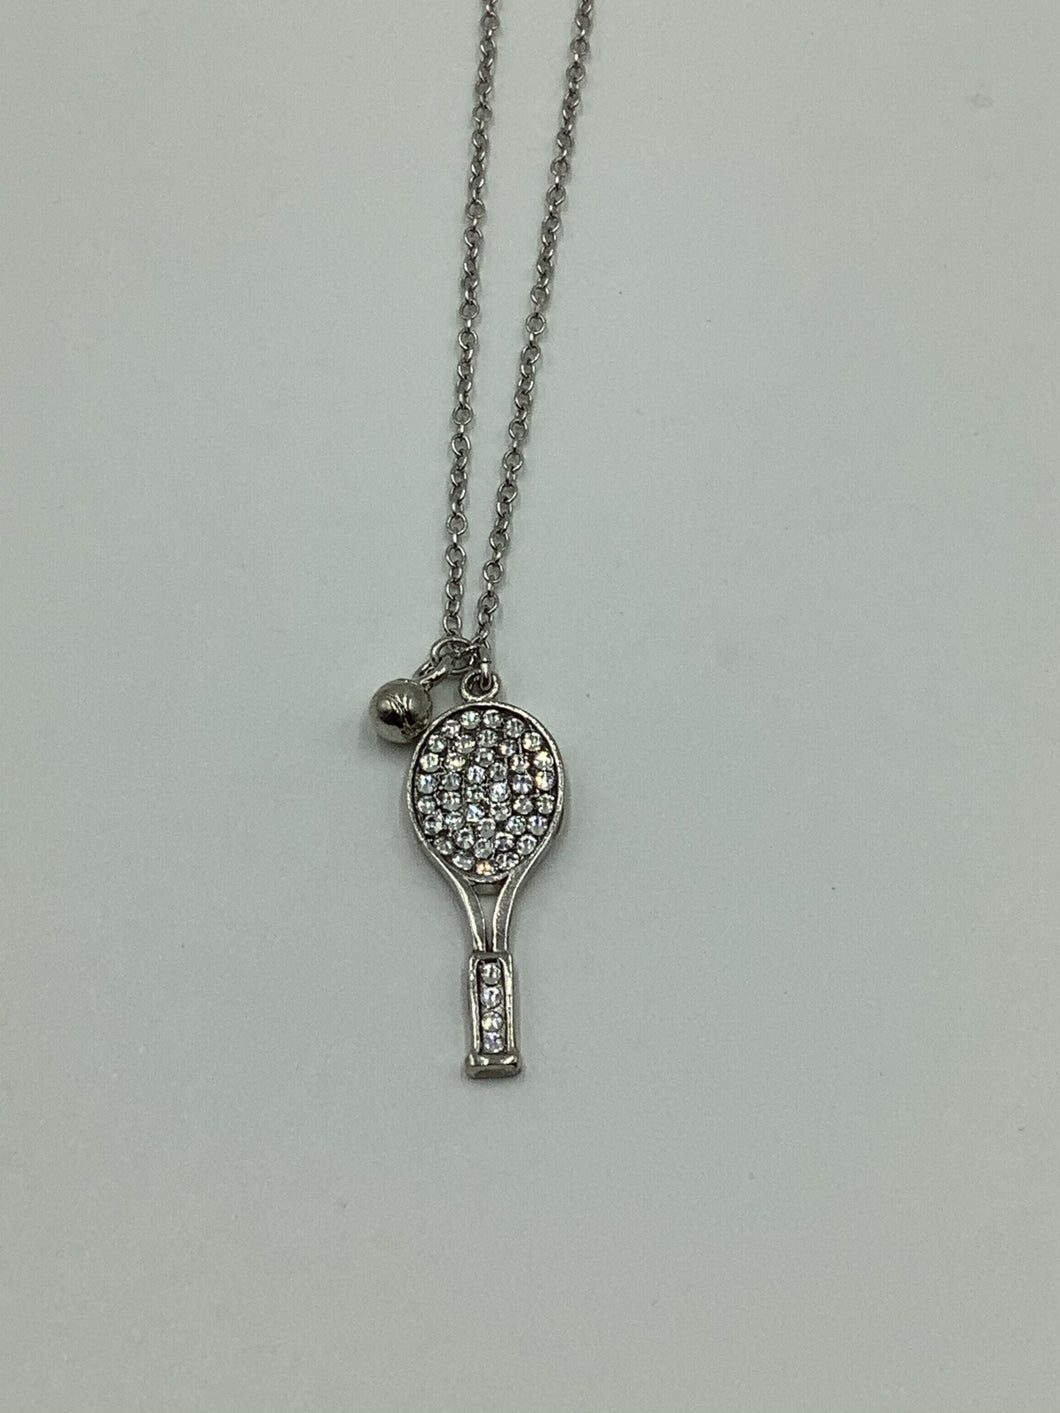 Emily Austin Crystal Tennis Racquet and Ball Necklace - Sterling Silver Chain